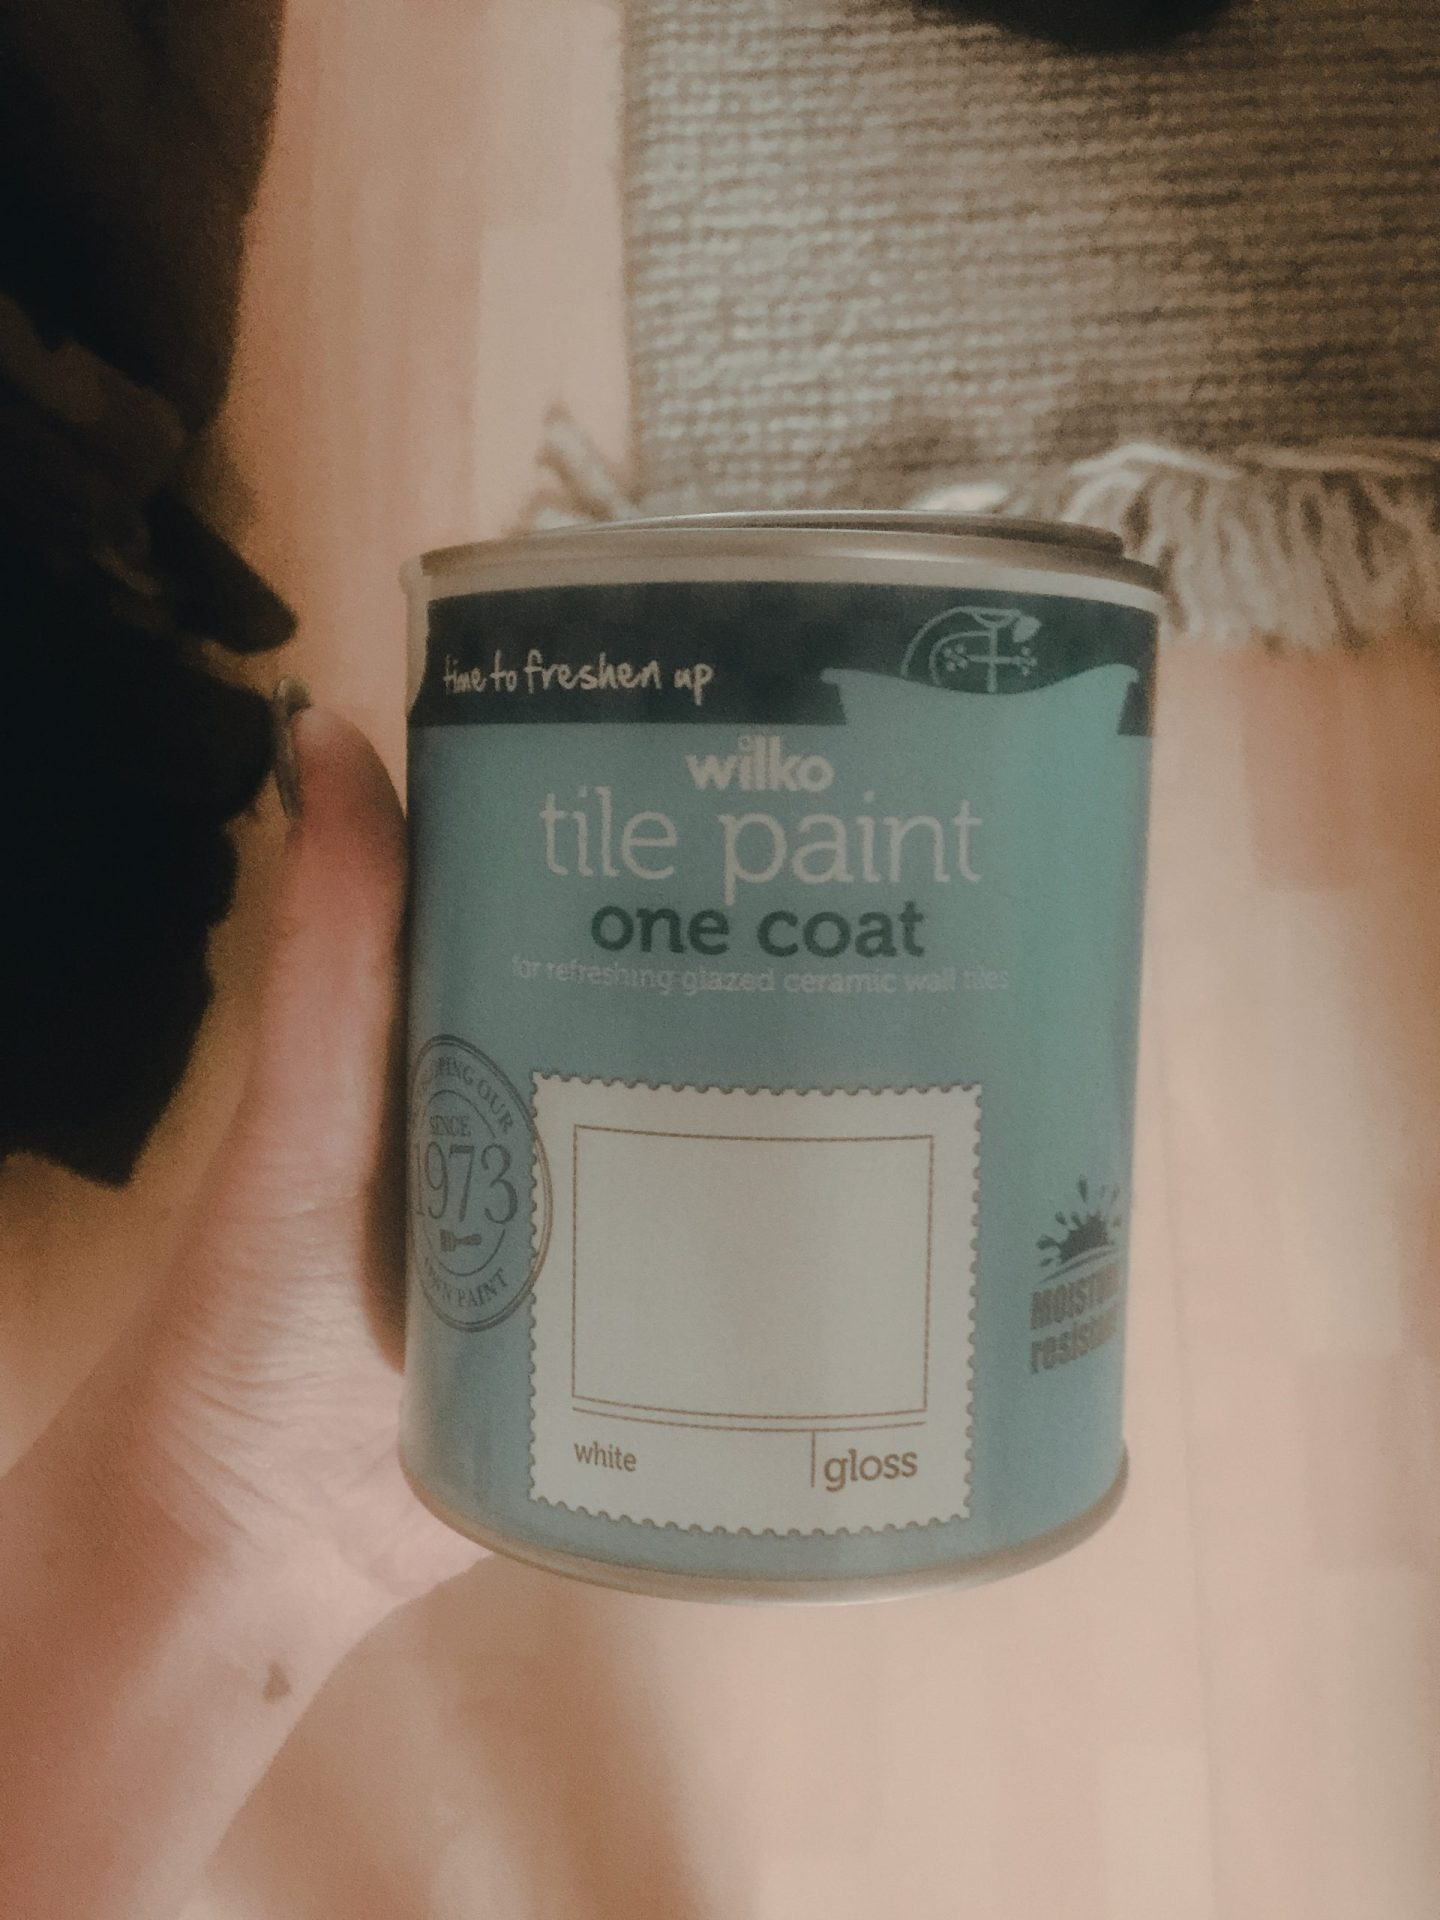 wilko tile paint